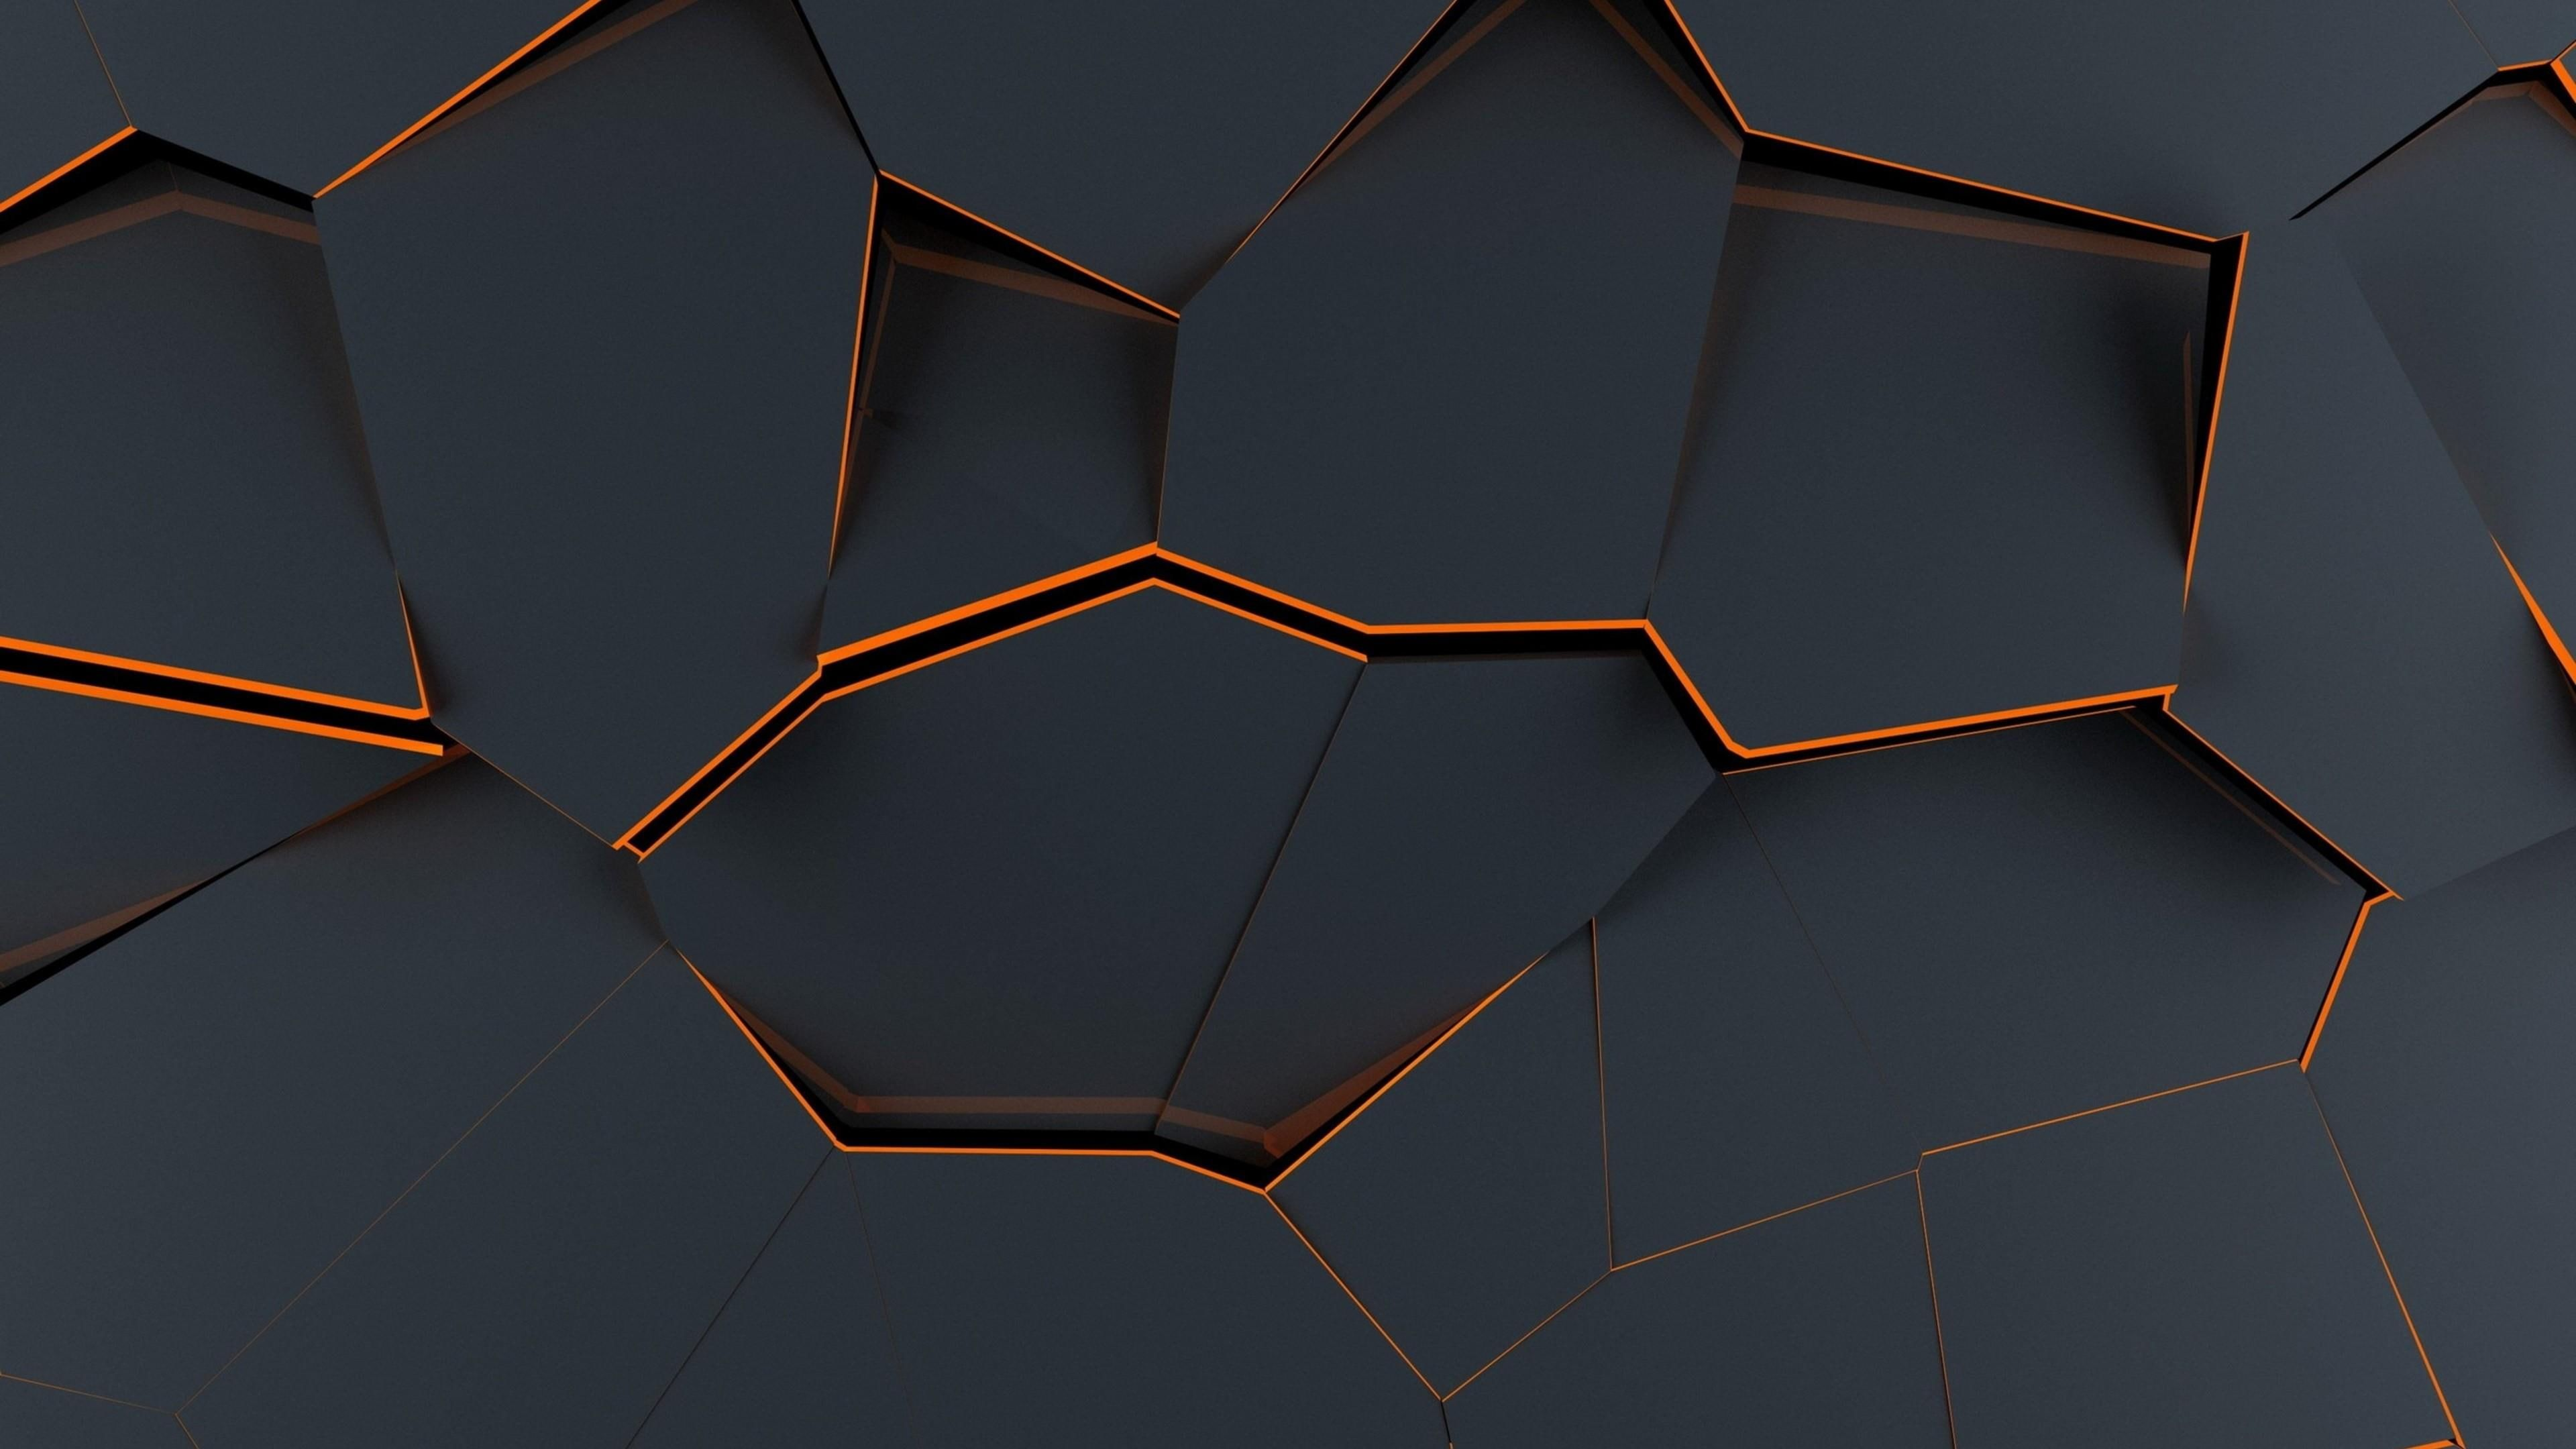 Polygon Material Design Abstract 3d Digital Art Artwork Art